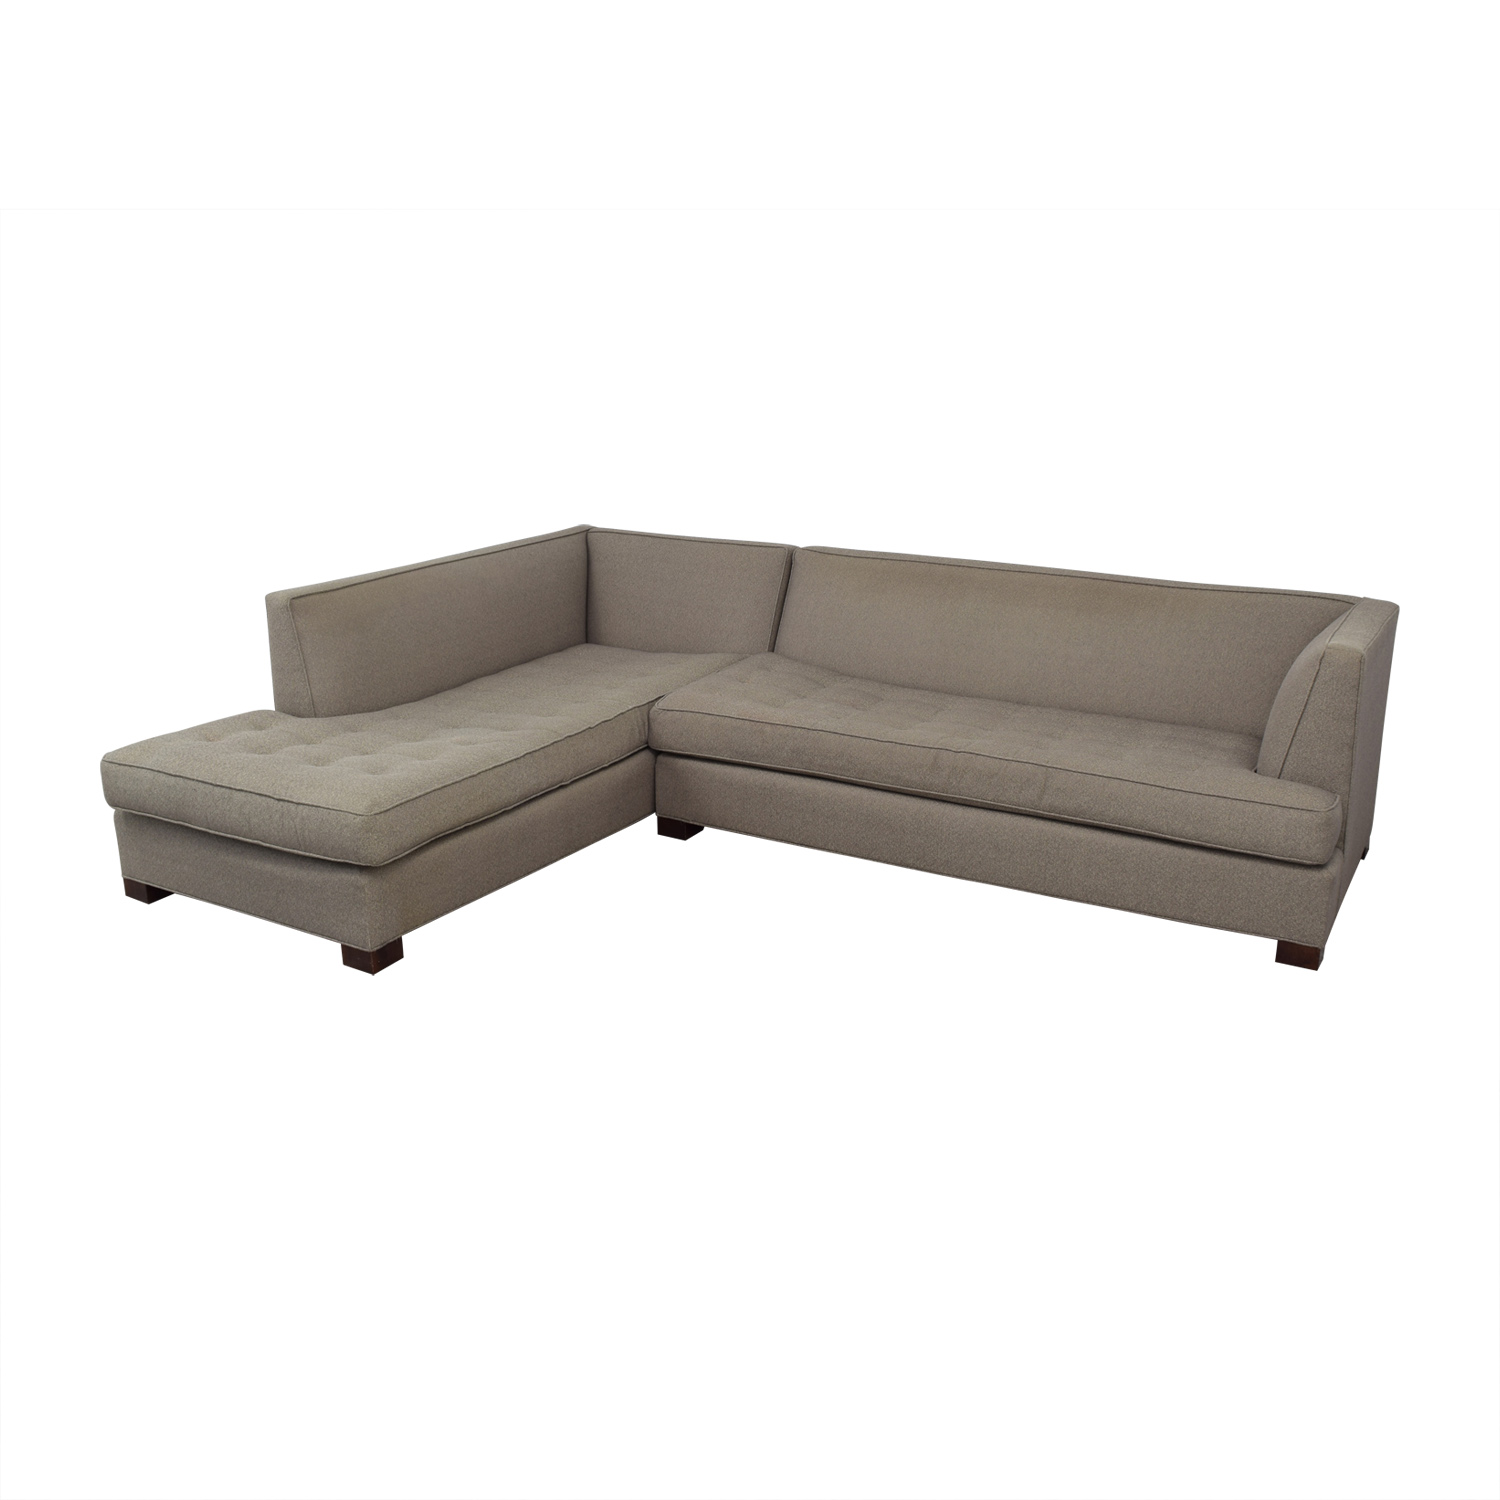 Mitchell Gold + Bob Williams Mitchell Gold + Bob Williams Beige Tufted Chaise Sectional nj